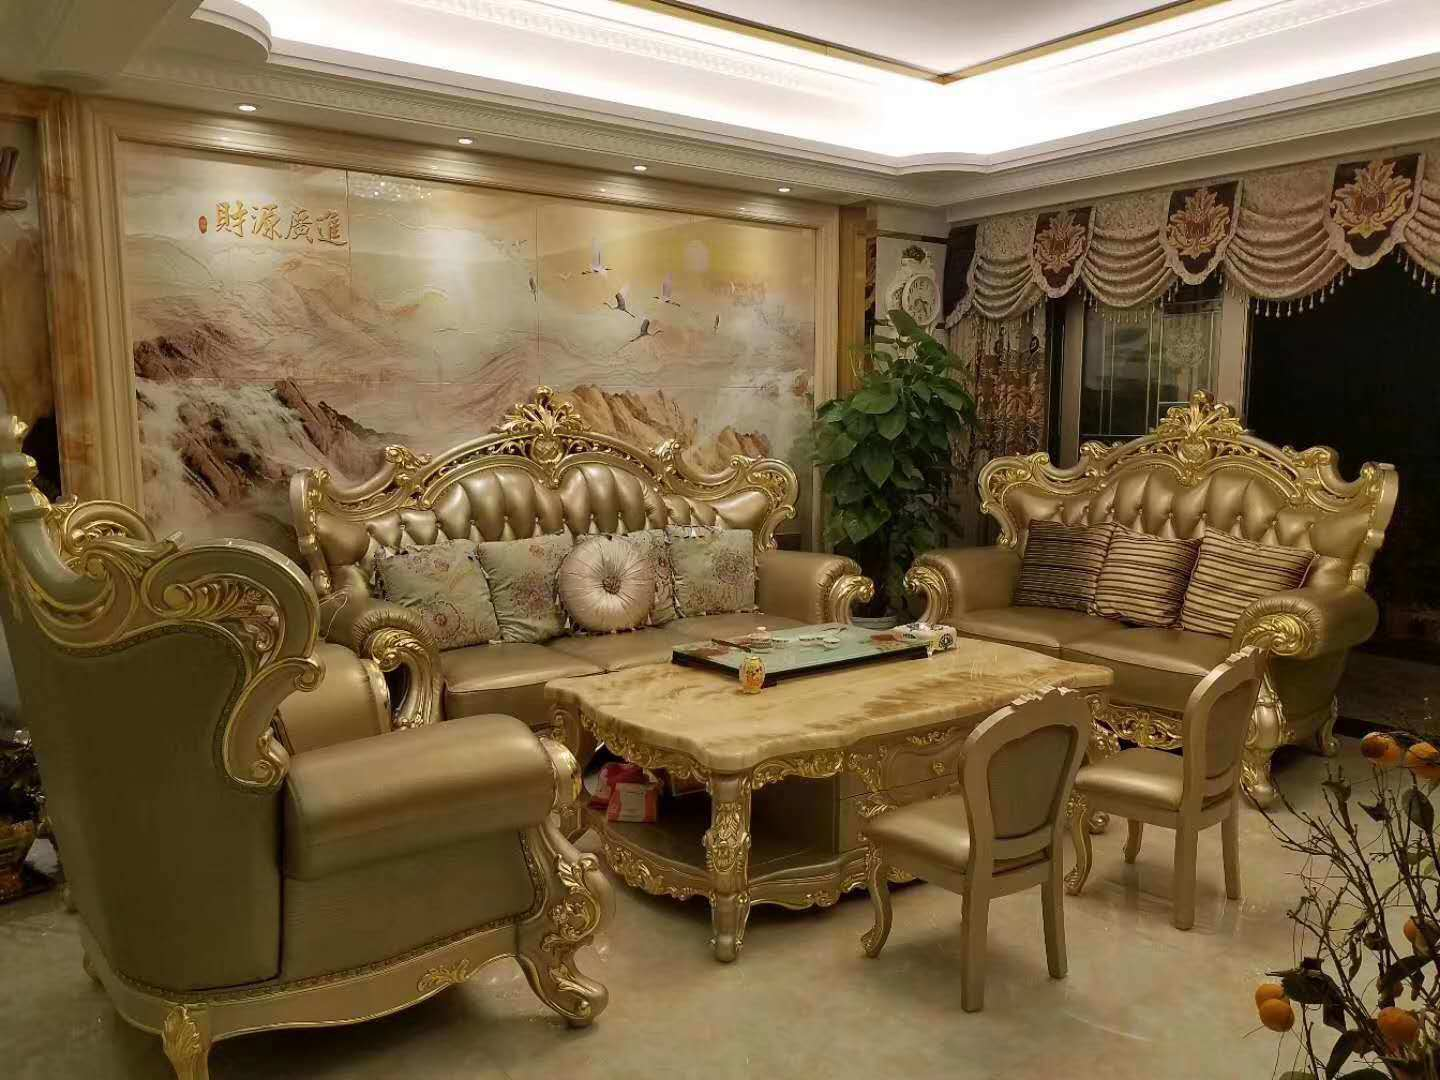 Marvelous Hot Item Golden Color Luxury Royal Furniture Sets Living Room Leather Sofa 028 Interior Design Ideas Tzicisoteloinfo